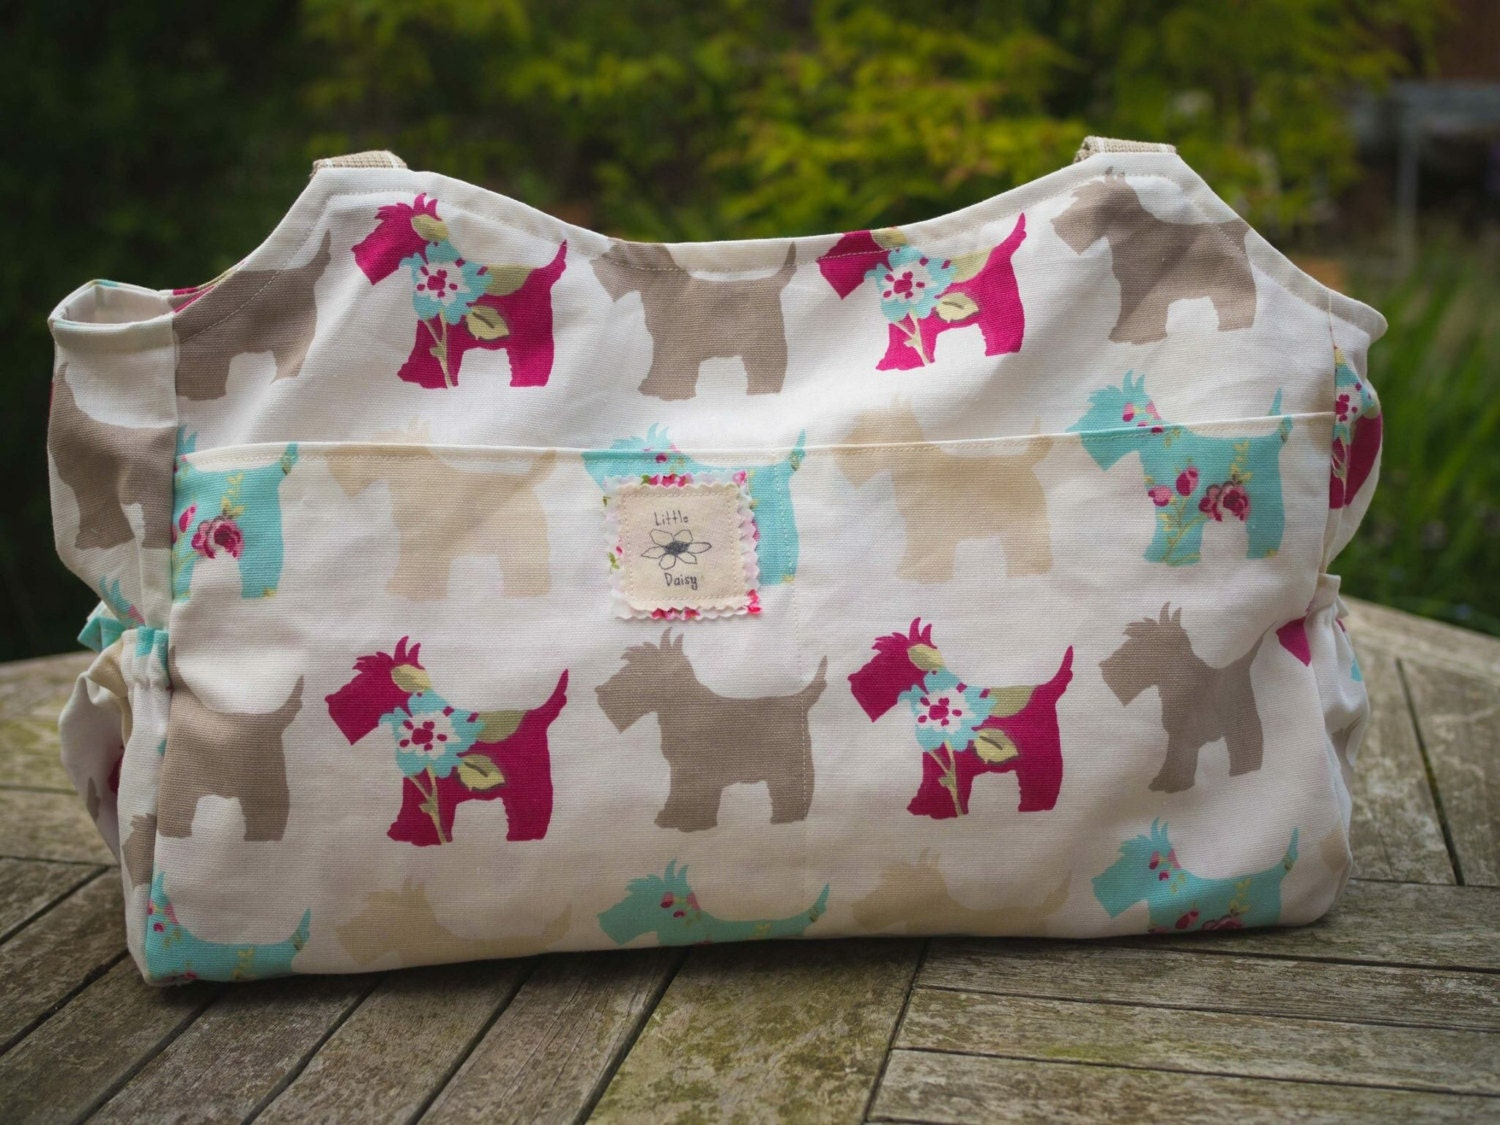 Scottie dog bag baby change bag nappy bag diaper bag large purse baby shower gift mum to be gift large bag new baby gift